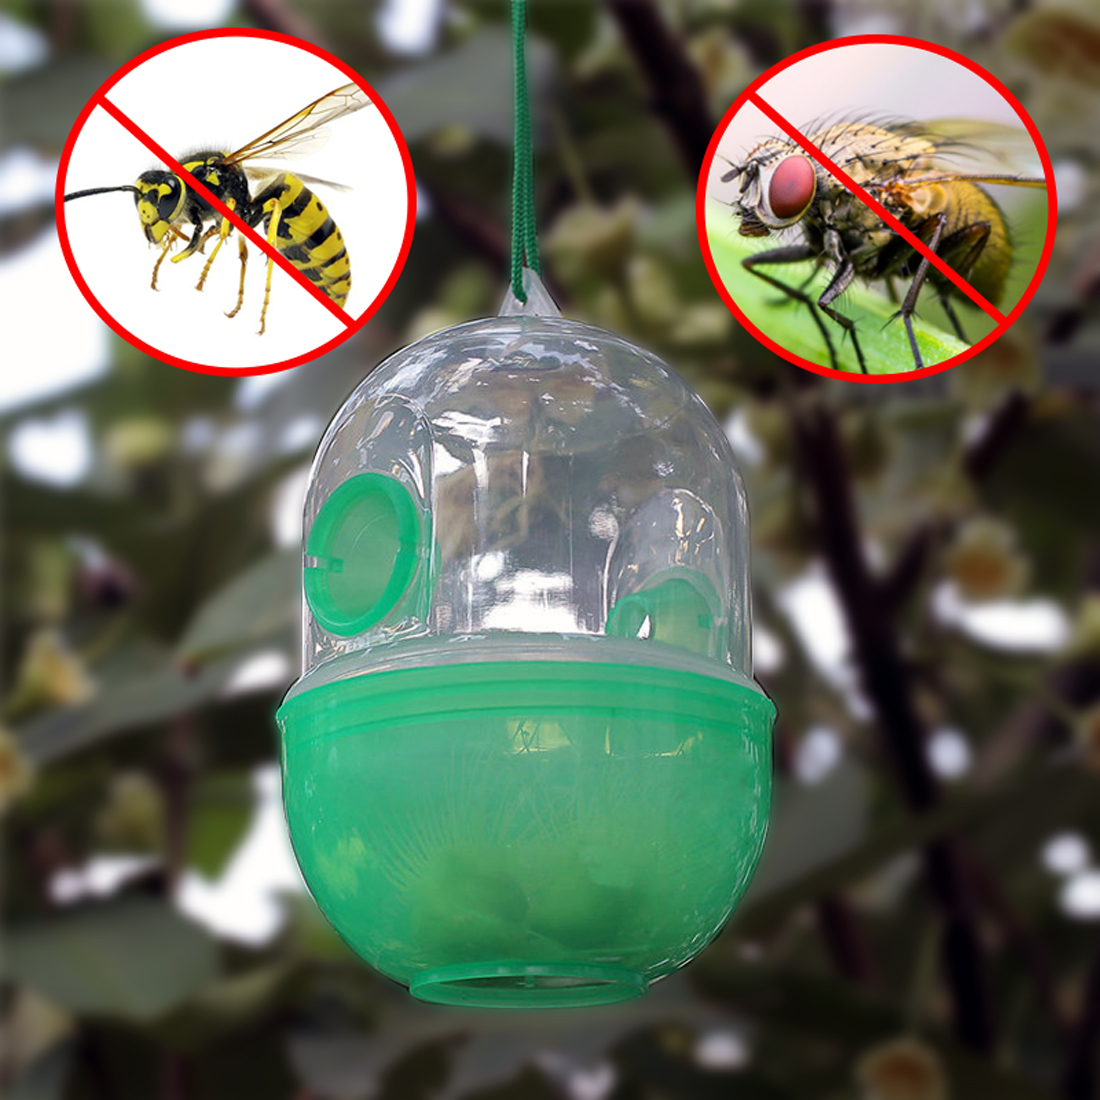 Reusable Garden Wasp Trap Kills Pest Fly Killer Reject Asian Hornet Catcher Hanging Killing Anti Bee Yellow Jacket Yellowjacket